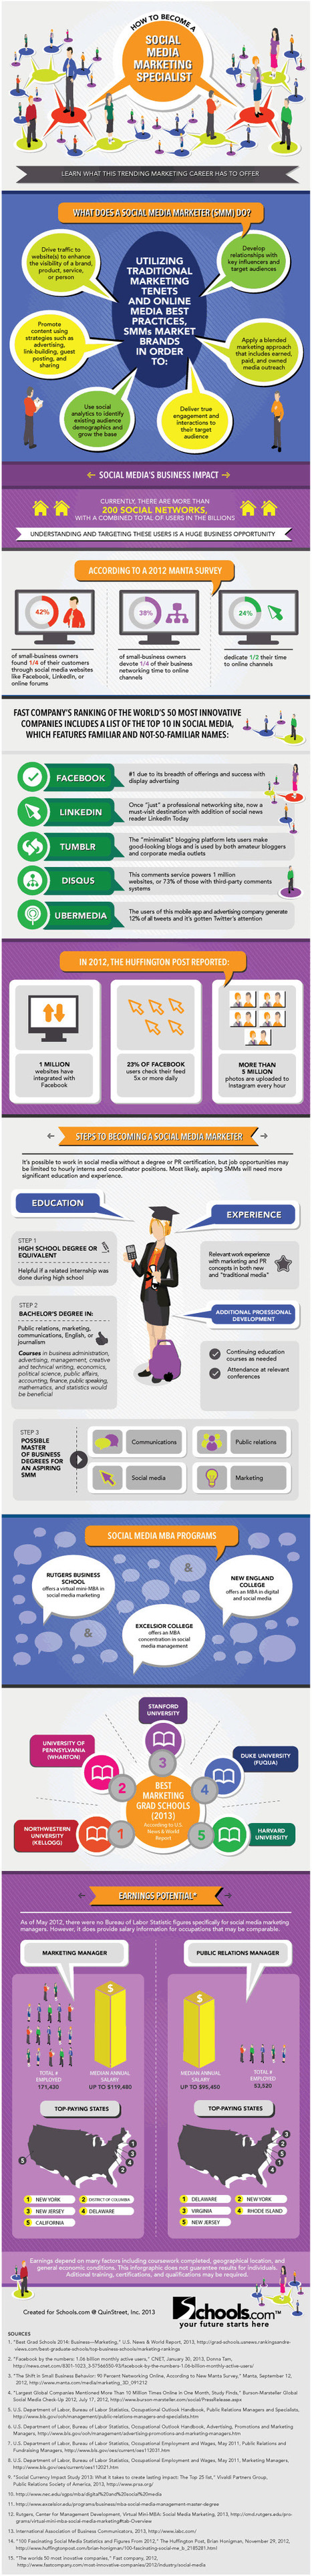 How to Become a Social Media Marketing Expert - Infographic | Nozzlsteve's Marketing Infographics | Scoop.it